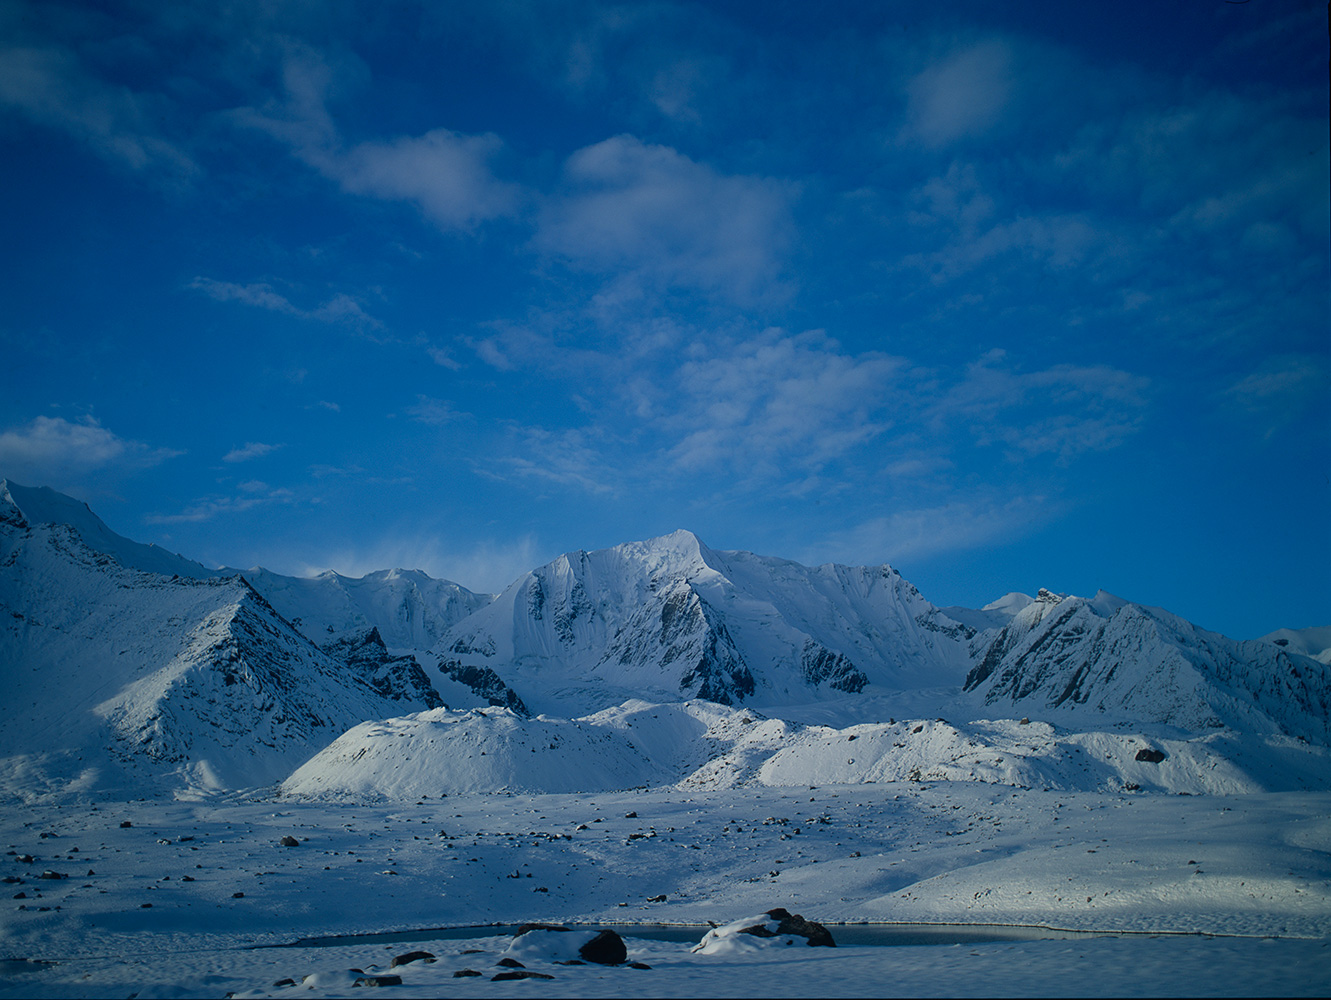 A view of the peaks lying immediately to th south of the Karumbar Pass, ChitralBronica ETRSi, Fuji Velvia